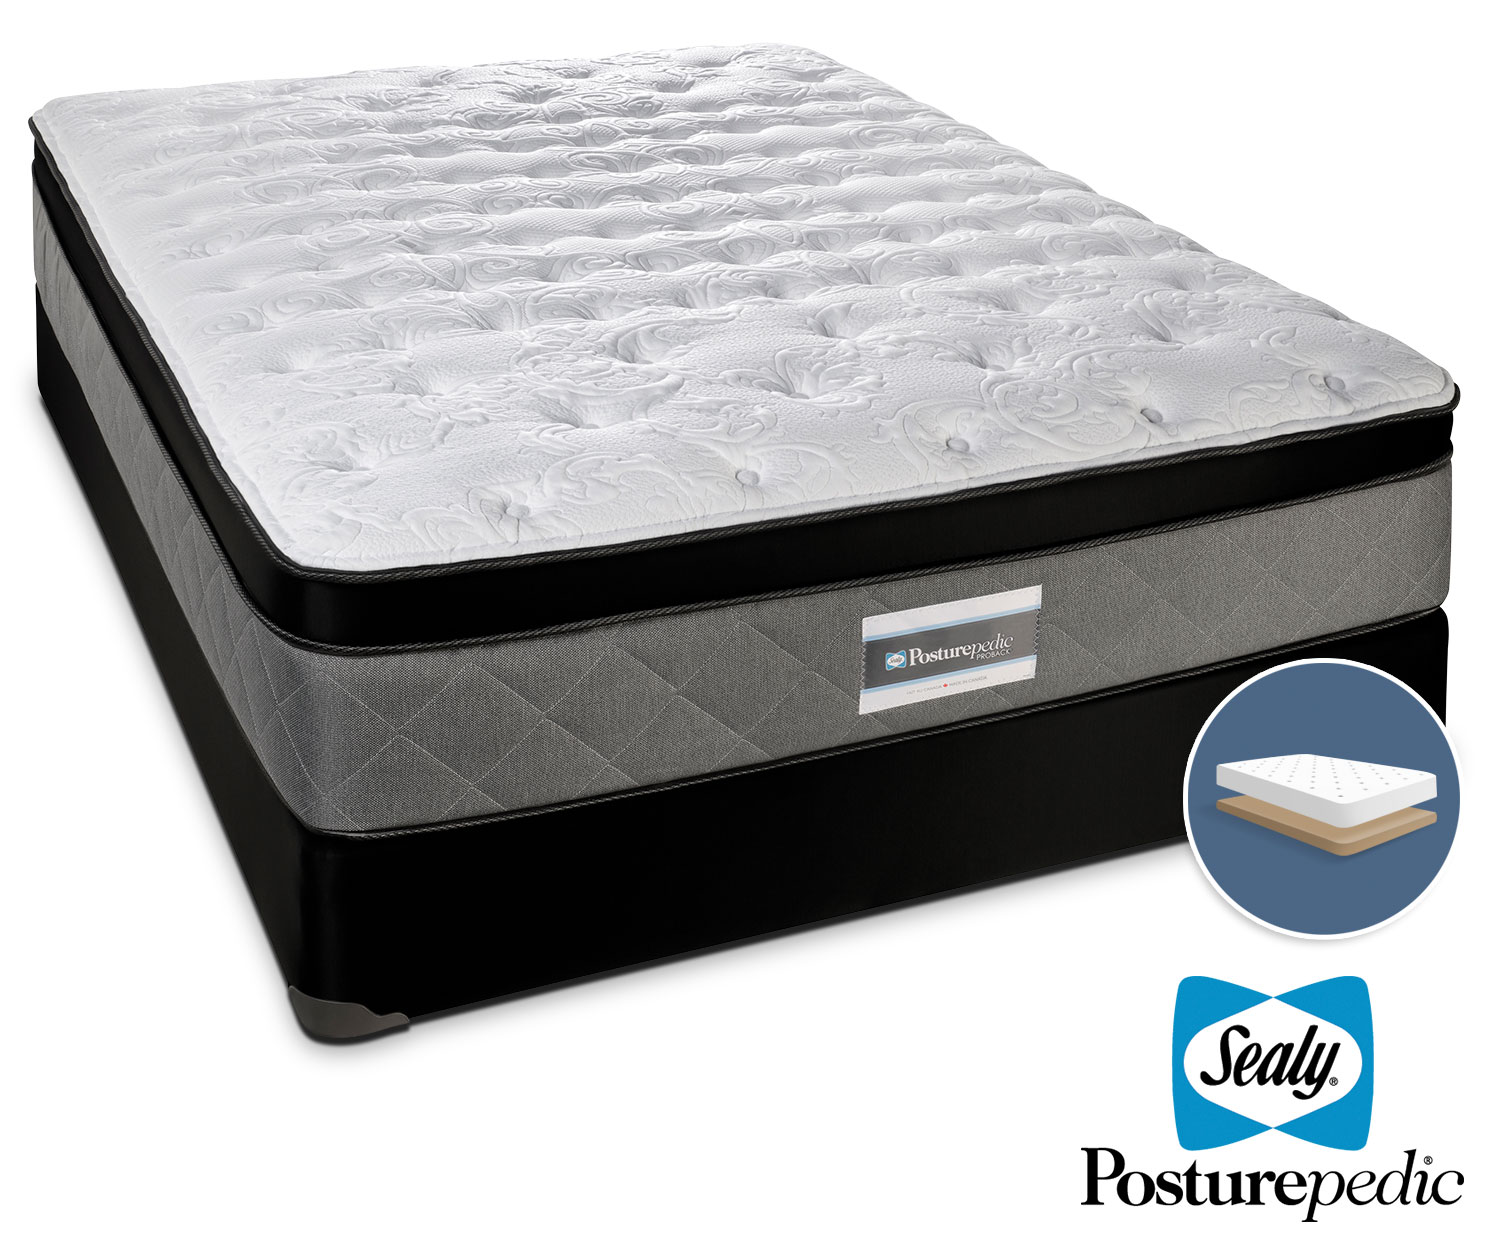 Sealy Scripture Firm Queen Mattress and Low-Profile Boxspring Set